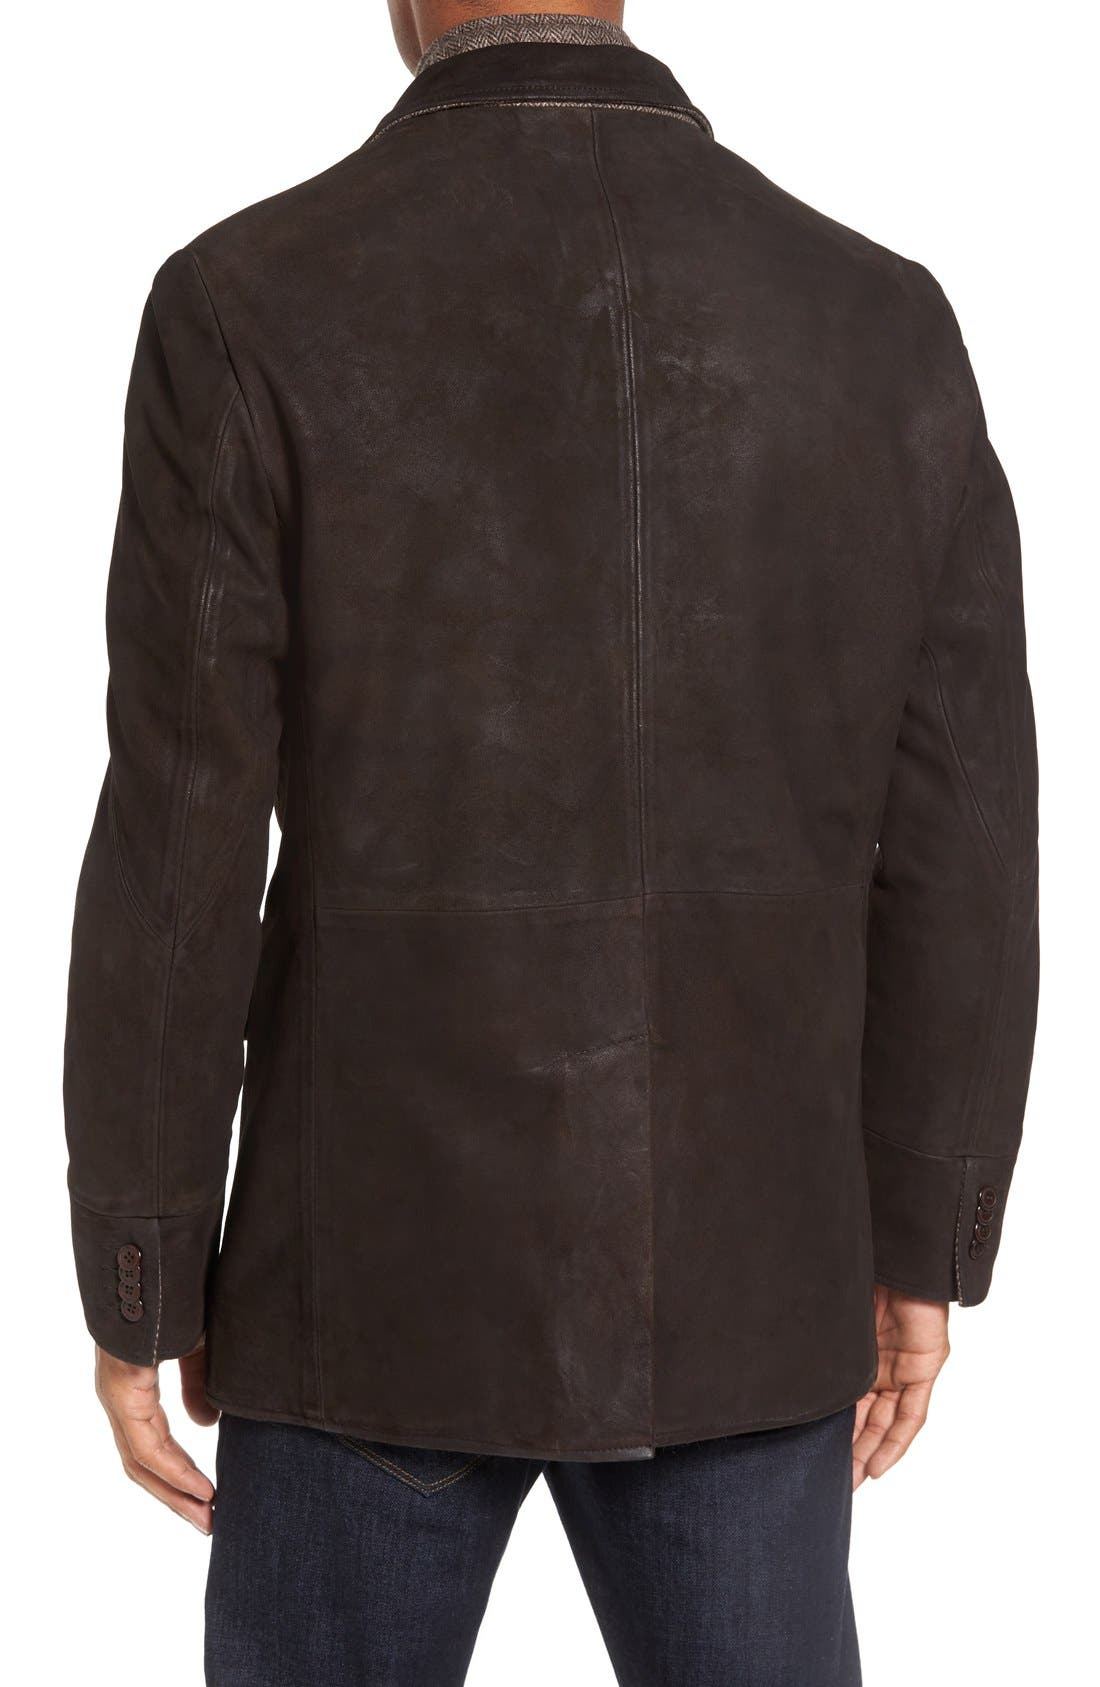 Distressed Leather Hybrid Coat,                             Alternate thumbnail 8, color,                             CHOCOLATE BROWN